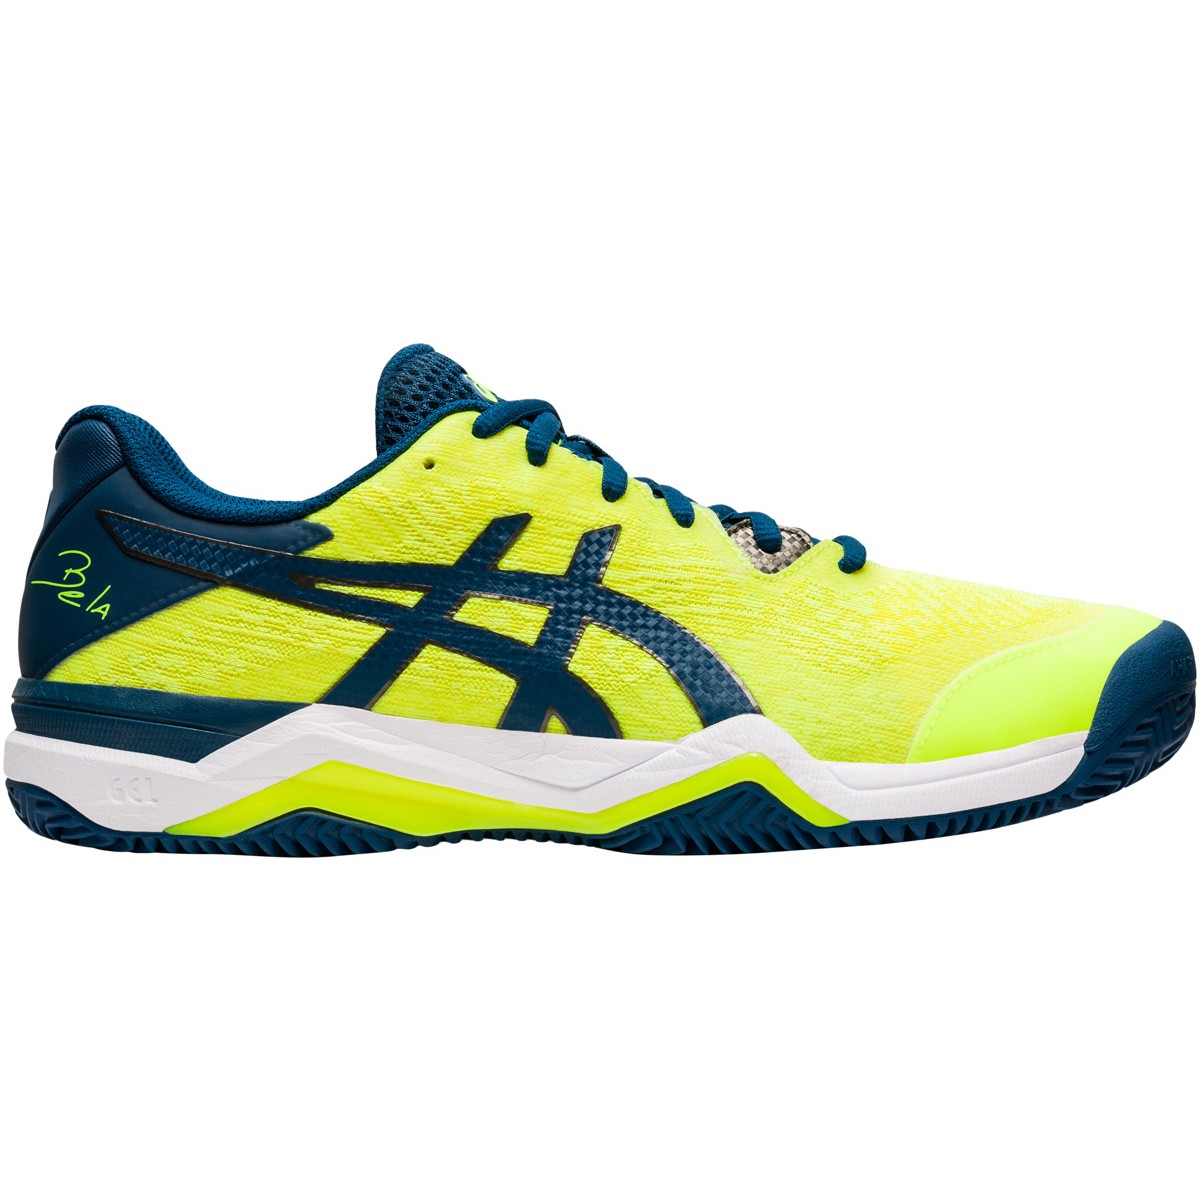 Baño pistola Interpretar  ASICS PADEL GEL BELA 7 SHOES - ASICS - Men's - Shoes | Tennispro